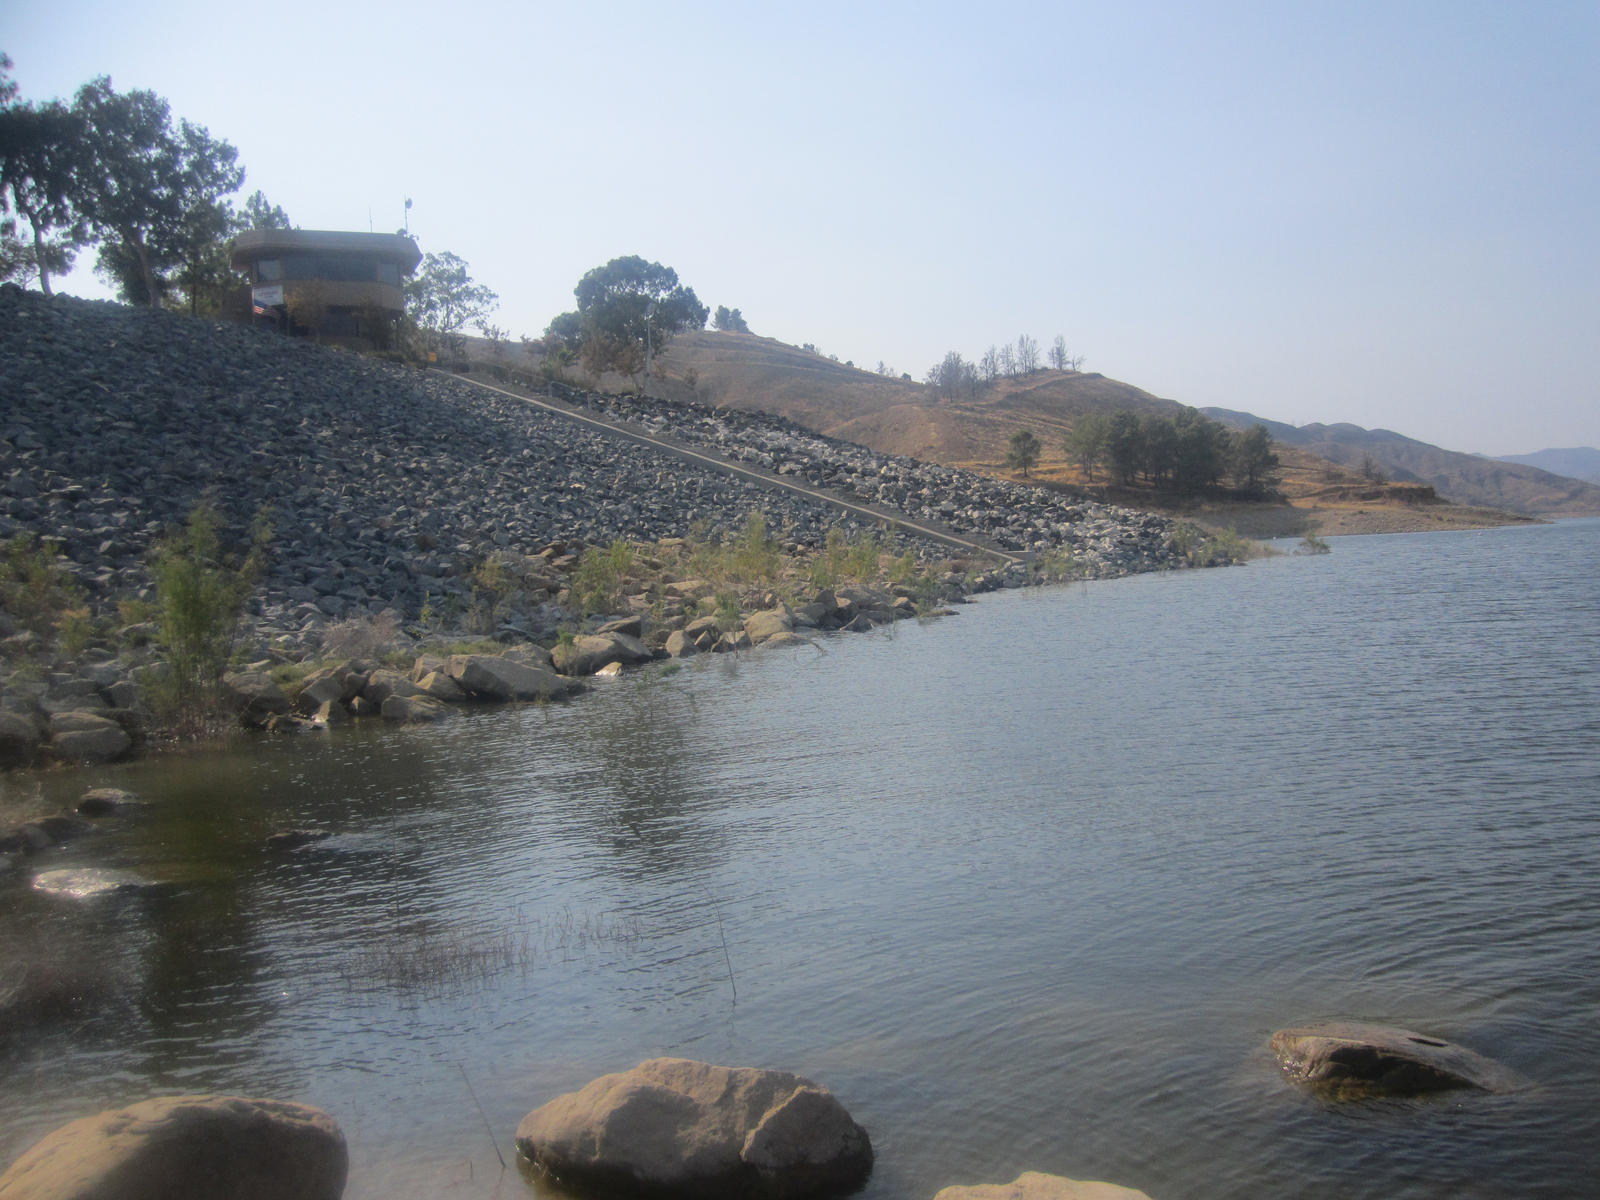 Castaic lake ca water levels rising by jdogg661 on deviantart for Castaic lake fishing